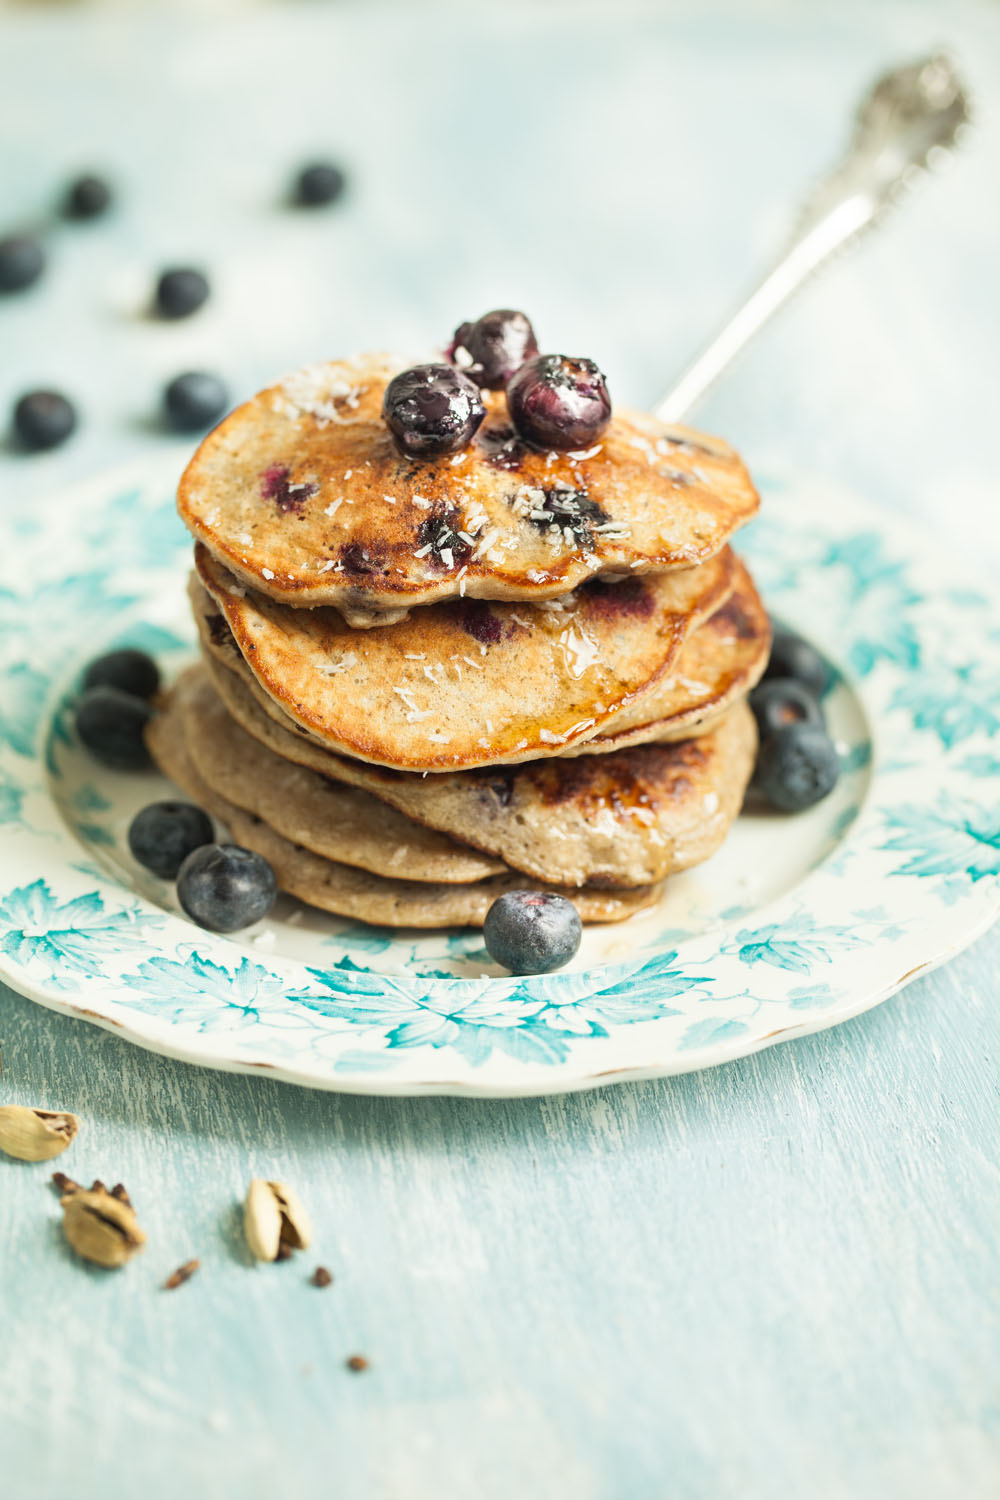 Blueberry,%20banana%20and%20cardamom%20pancakes-1.jpg